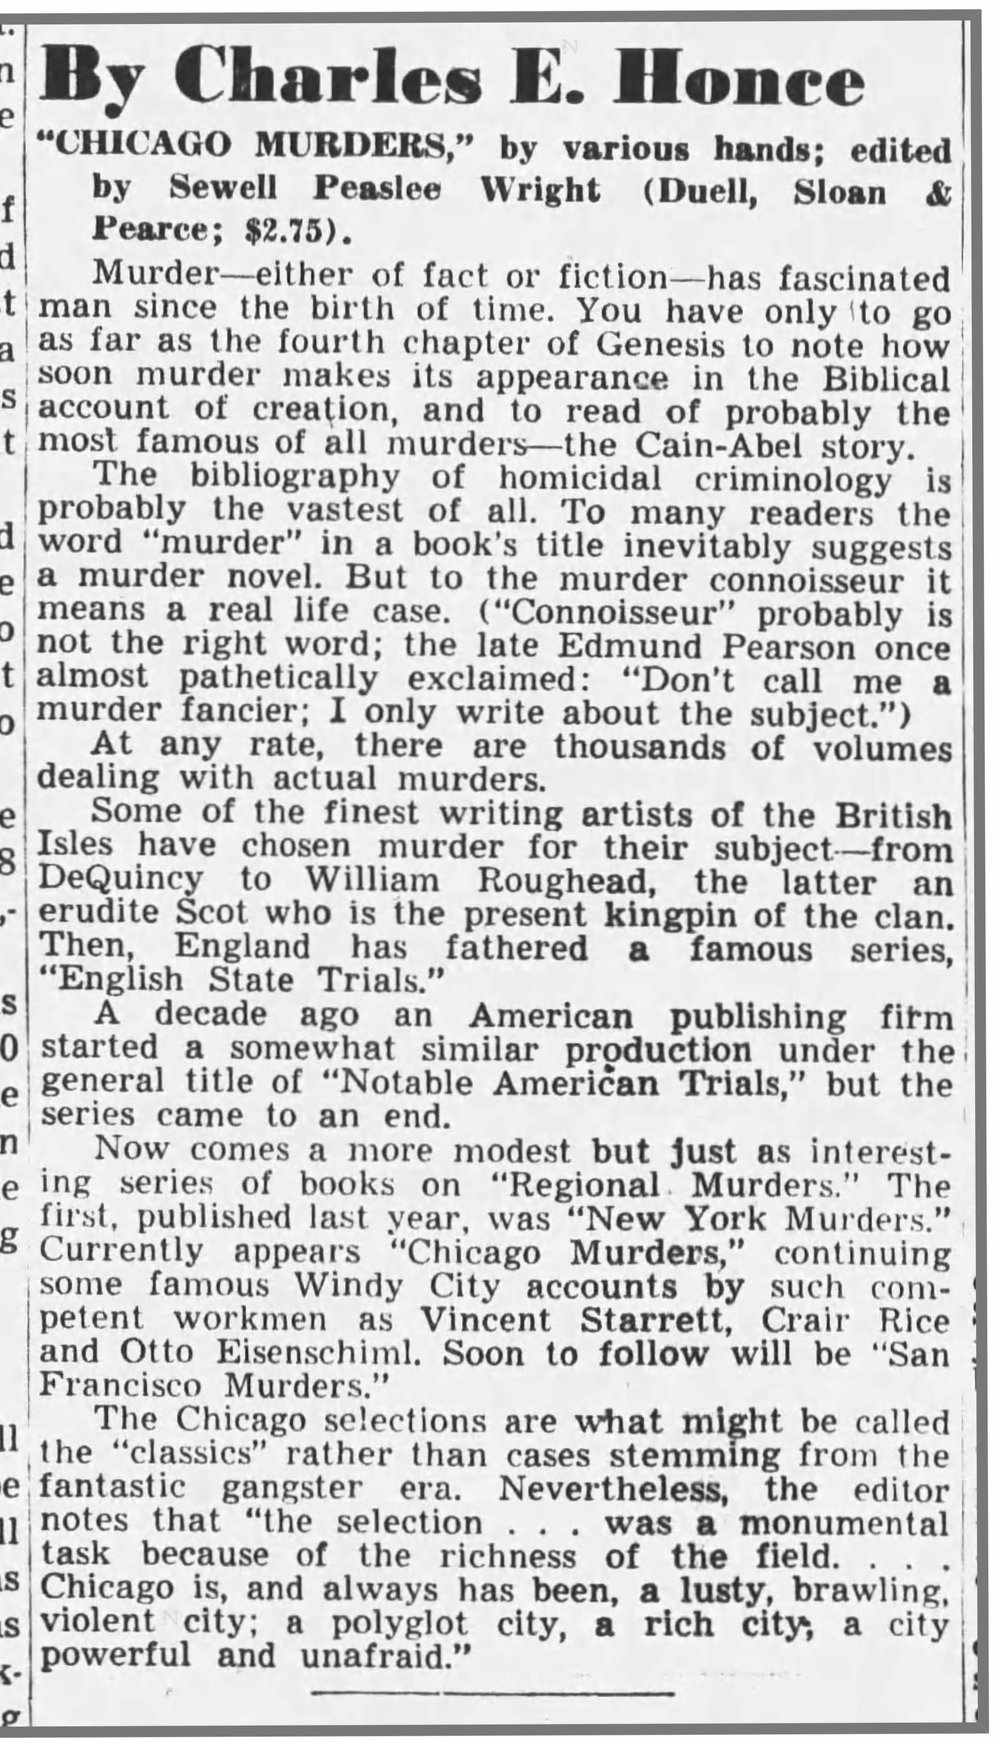 A review of  Chicago Murders  by Associated Press reporter, Baker Street Irregular and Starrett bibliographer Charles E. Honce. Published June 30, 1945 in the  Wilkes-Barre (Pa.) Record , among other newspapers.